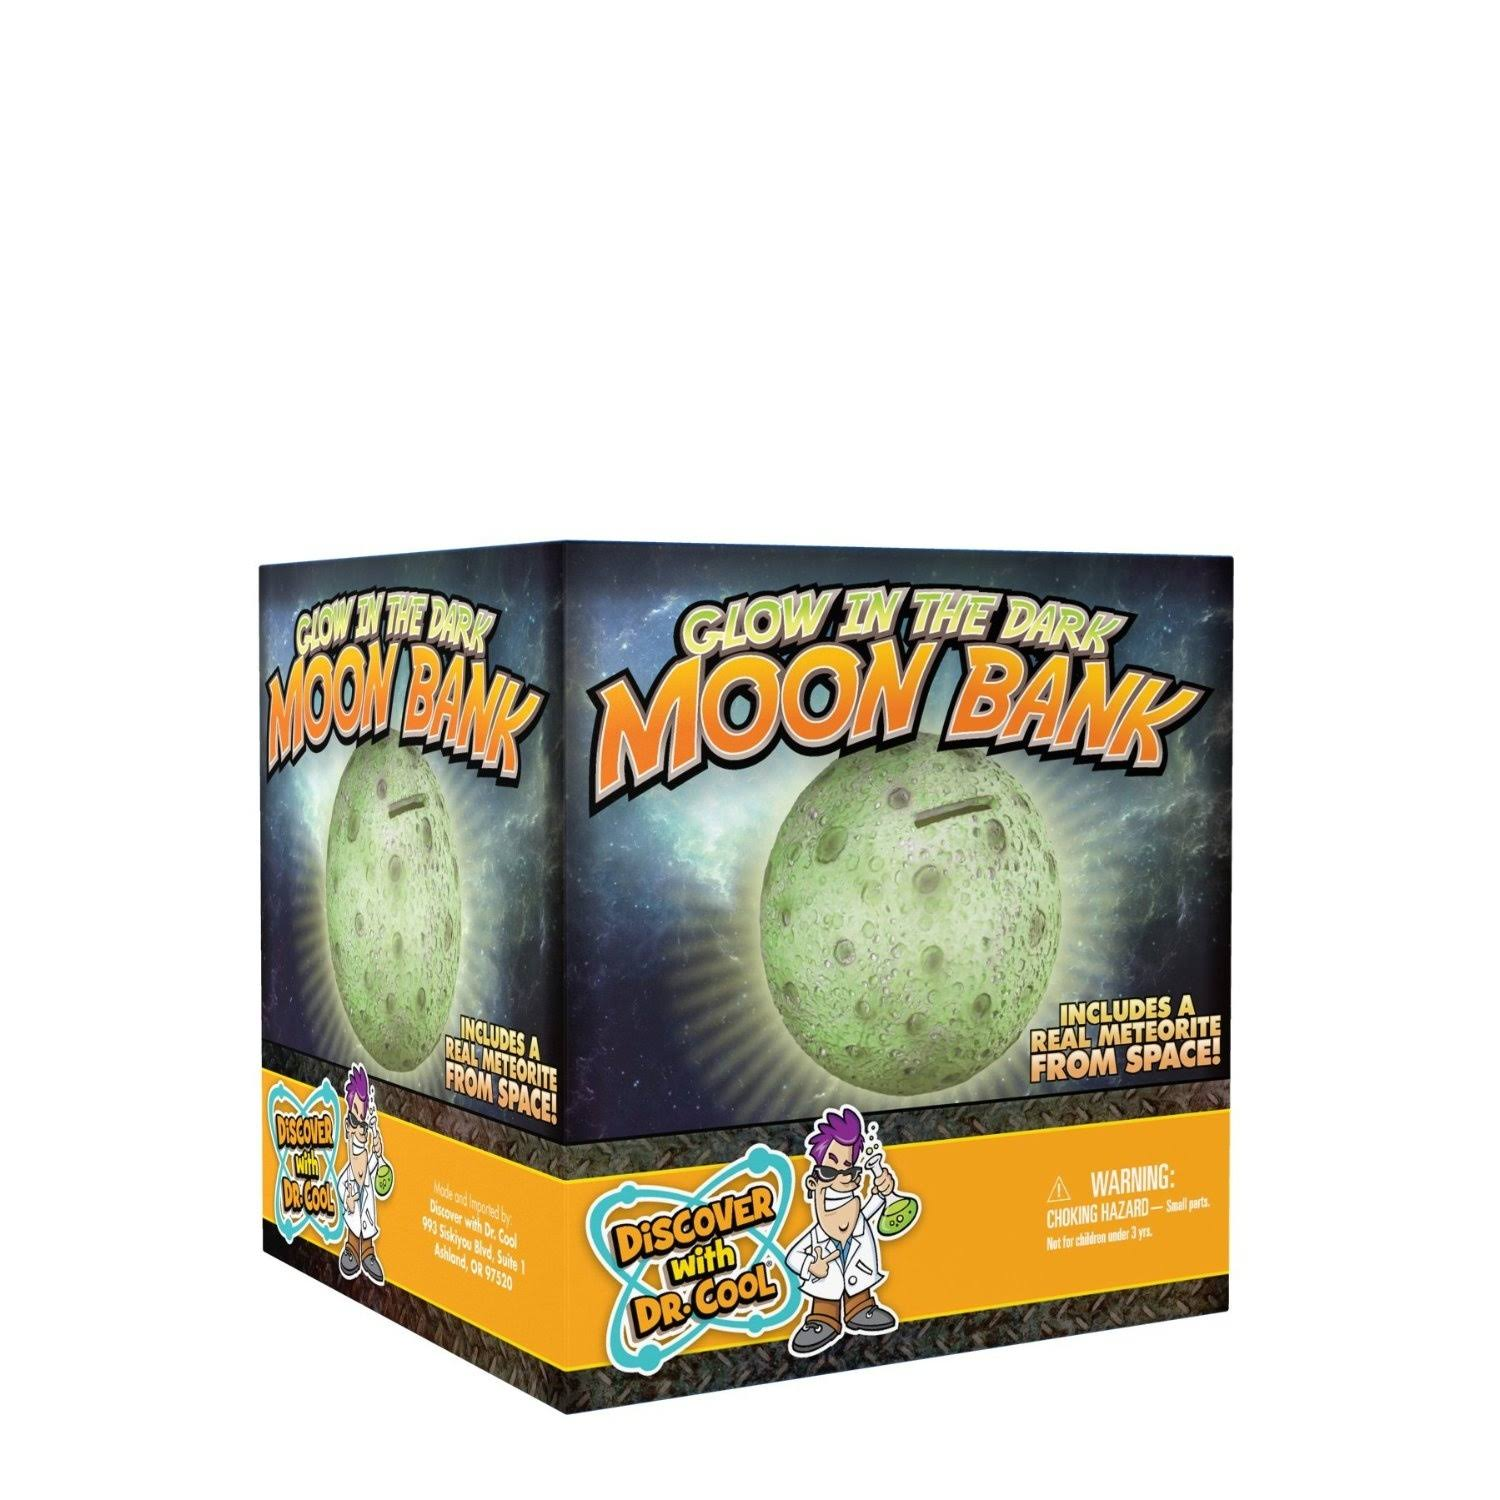 Discover with Dr. Cool Glow in the Dark Moon Coin Bank